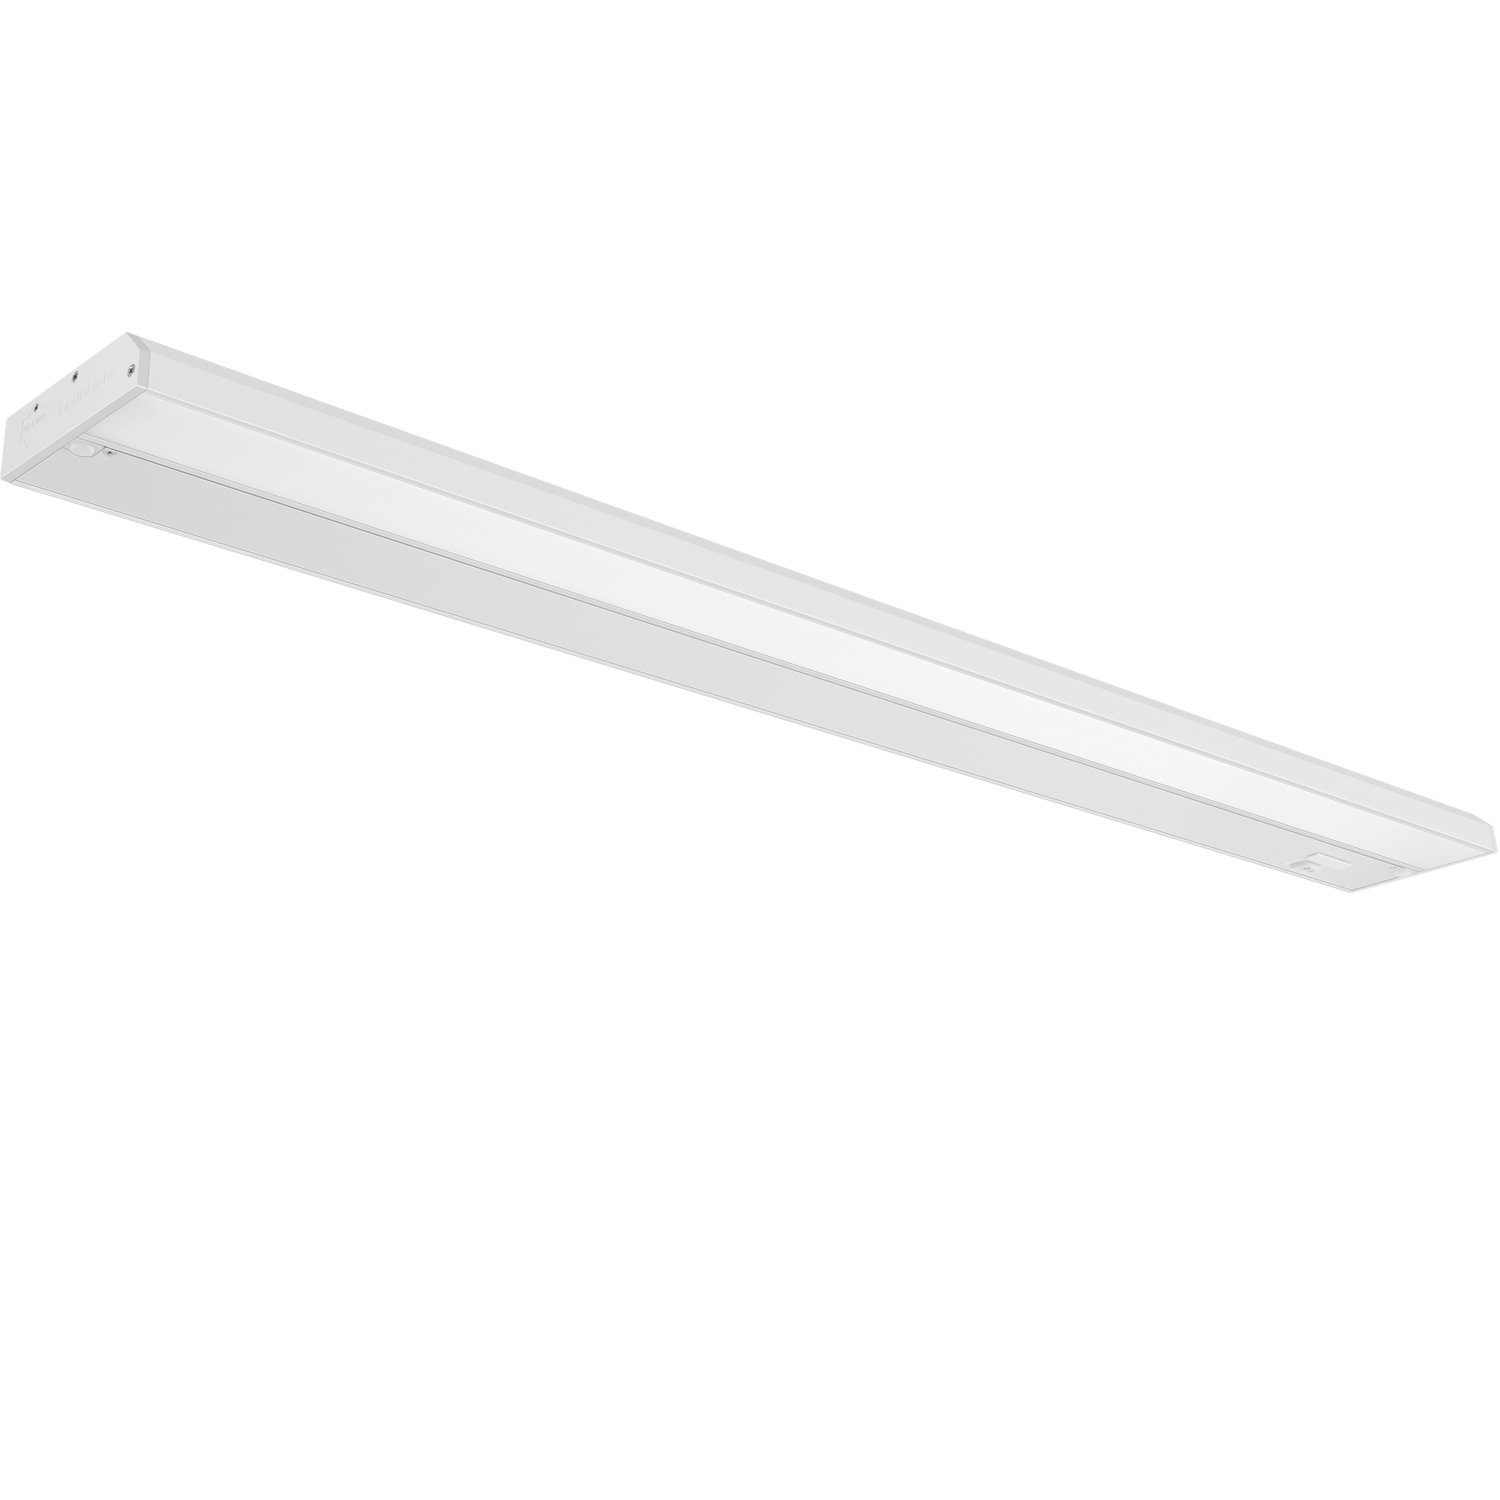 GetInLight 3 Color Levels Dimmable LED Under Cabinet Lighting with ETL Listed, Warm White (2700K), Soft White (3000K), Bright White (4000K), White Finished, 32-inch, IN-0210-4